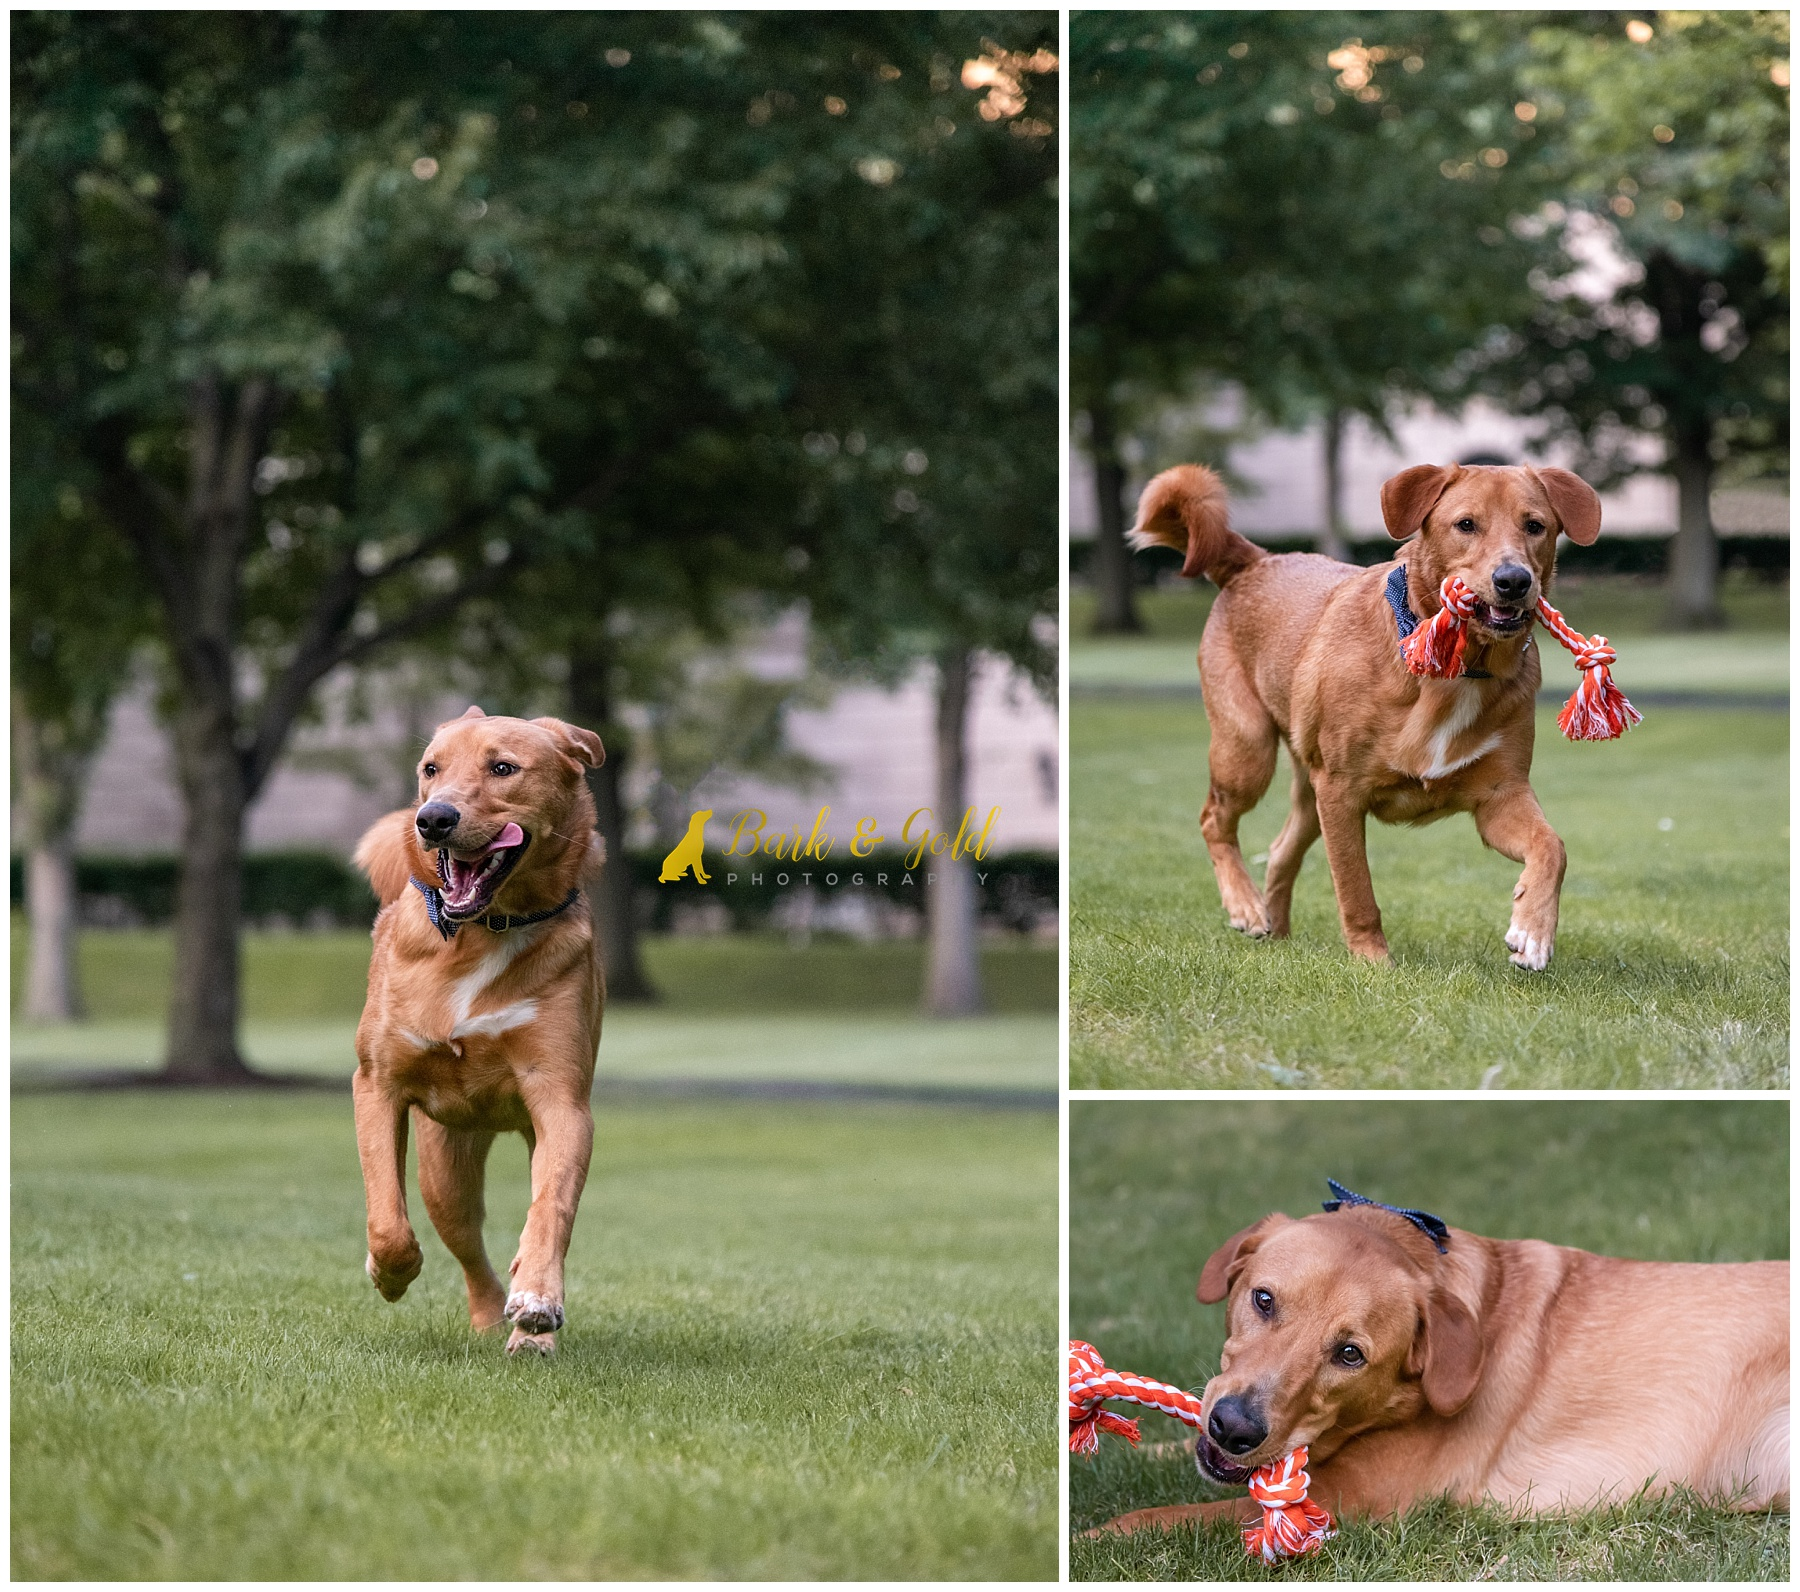 Brown mixed breed dog playing with toy at Schenley Plaza